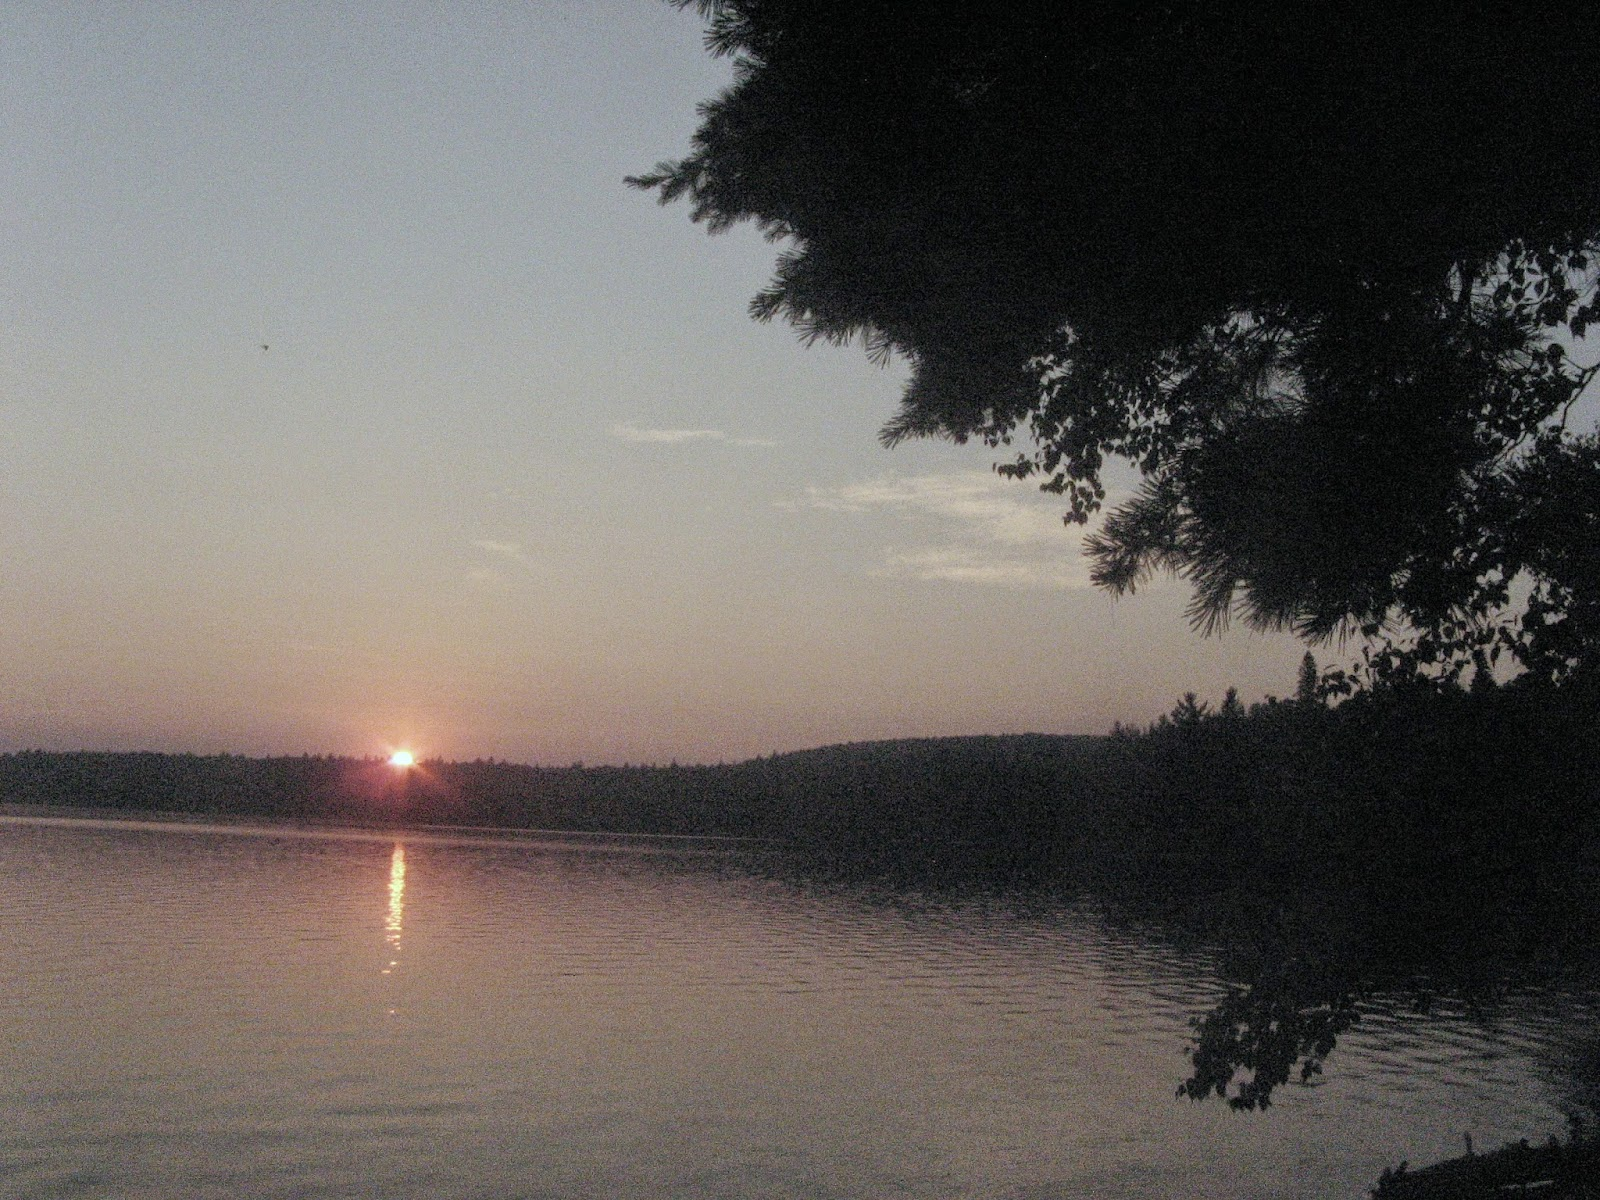 Sunset over Booth Lake, in Algonquin Park